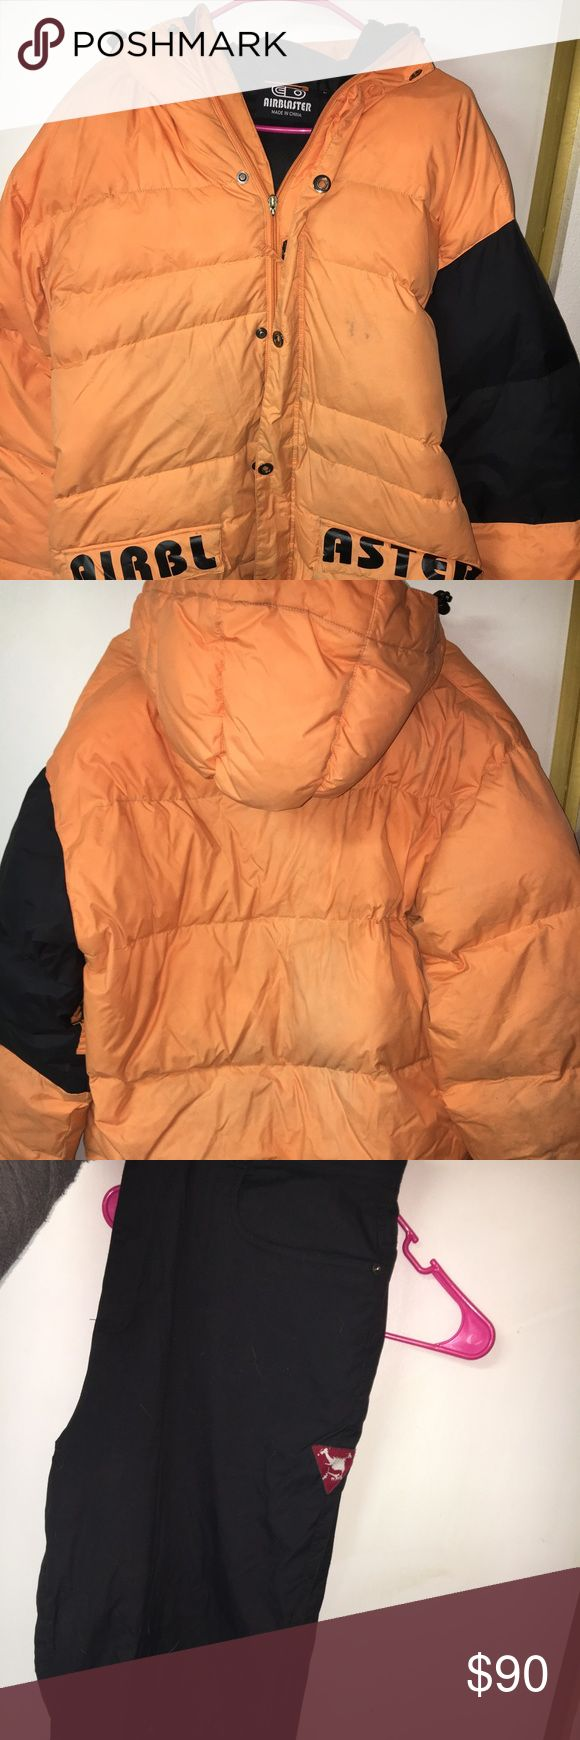 Snowboarding jacket and pants Used snowboarding jacket and pants. Not sure what the brand is for the jacket, but the pants are Oakley. XL pants. Jacket I'd say is an XL as well Jackets & Coats